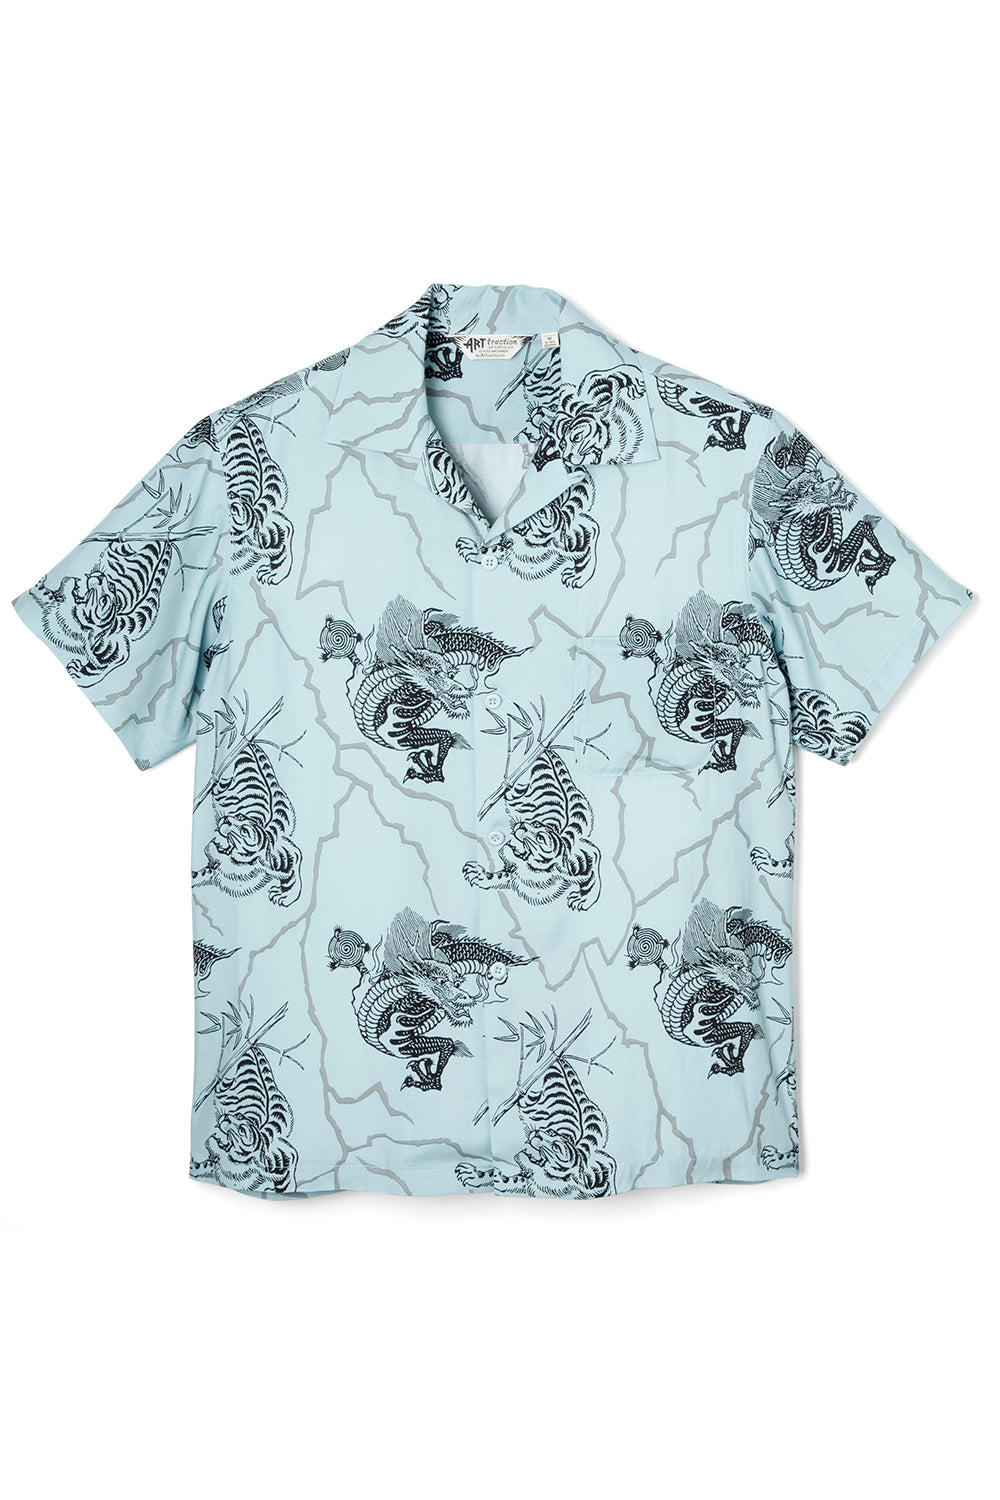 ART057 Tiger&Dragon Rayon Shirt -Sax-